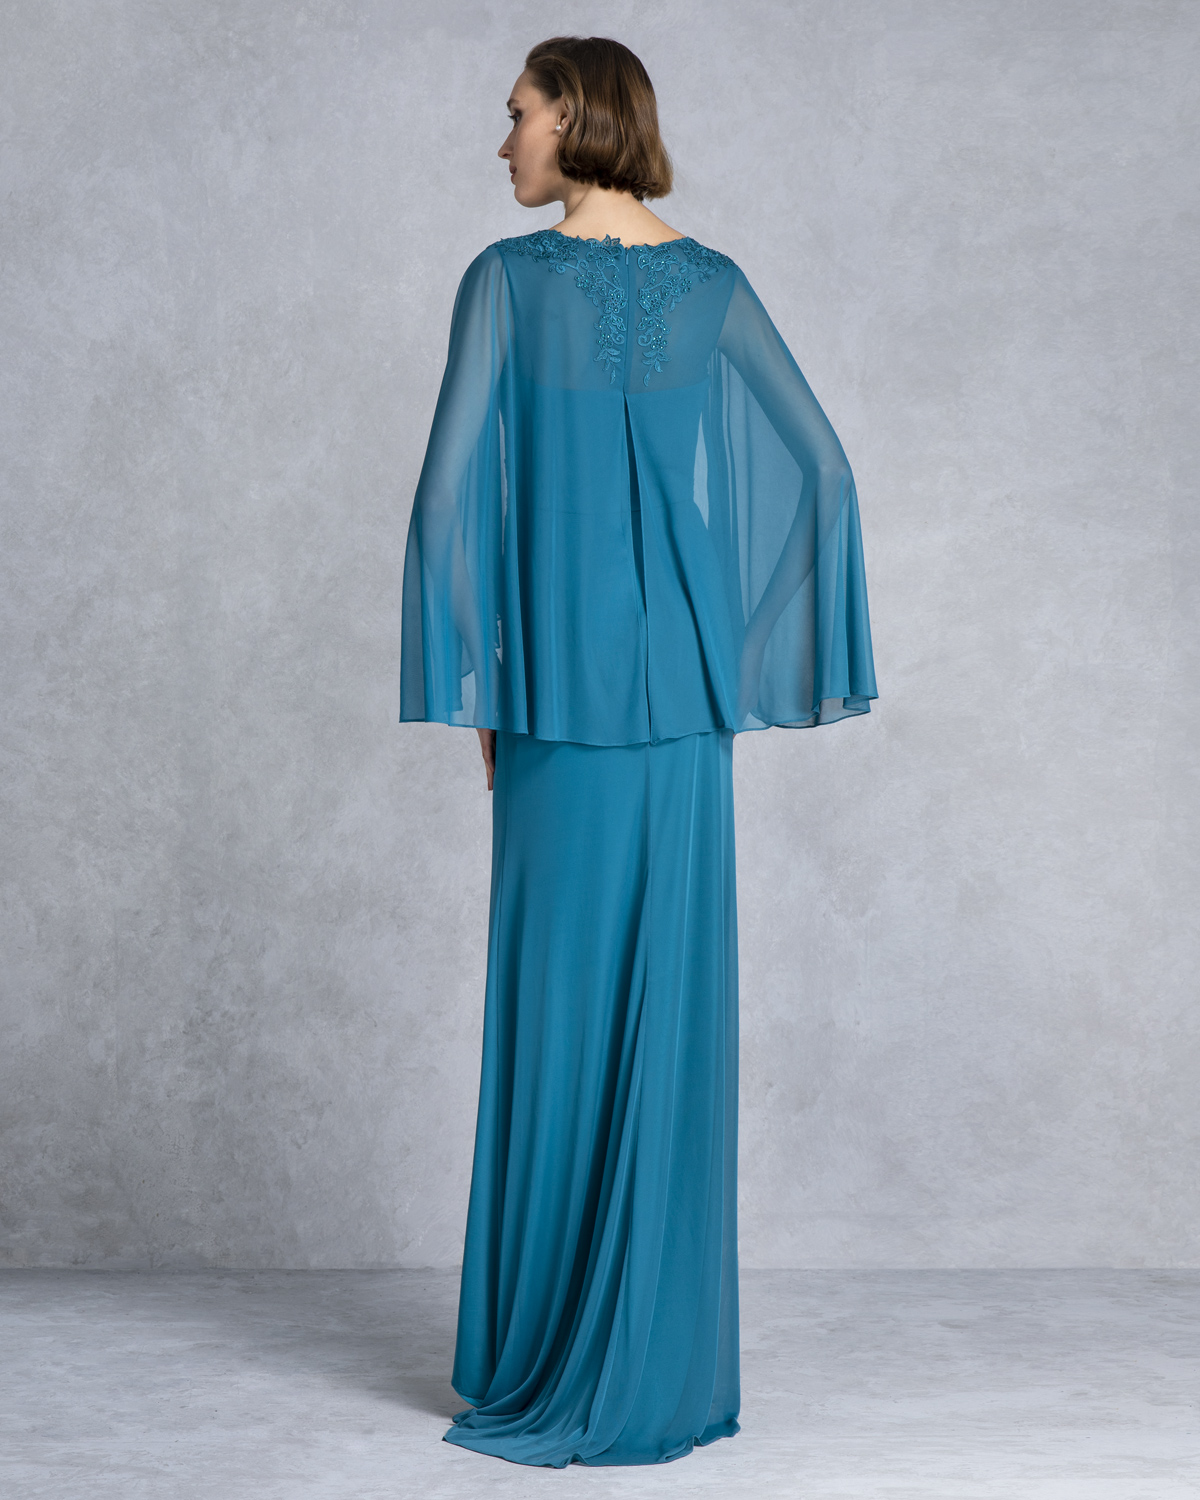 Classic Dresses / Long evening dress with lace top and chifon sleeves